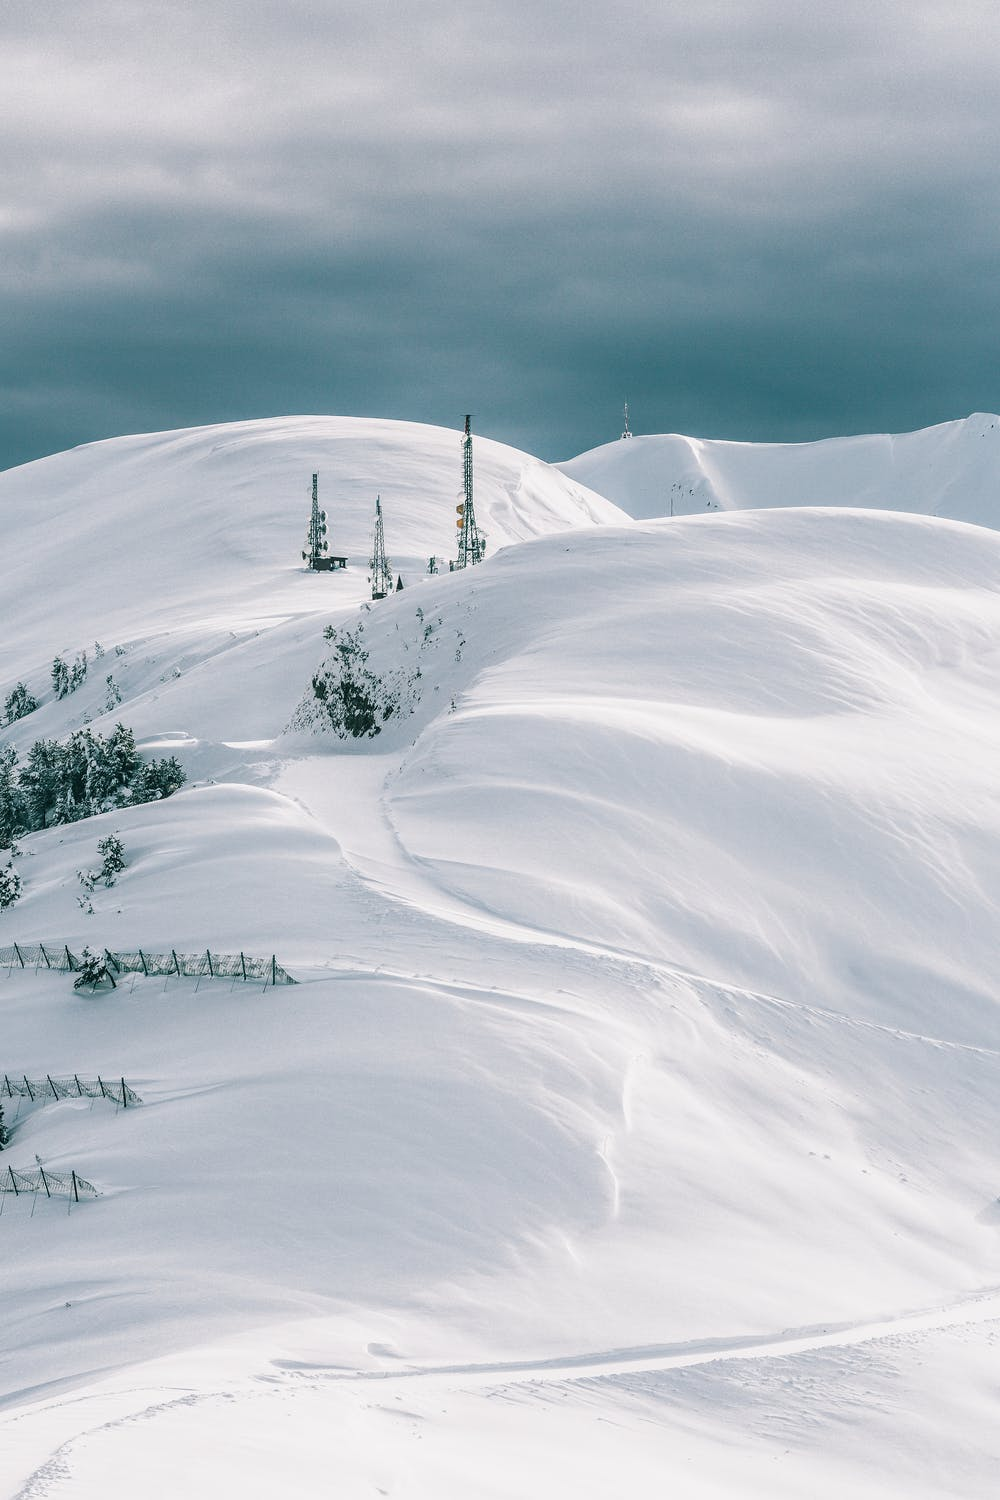 White winter wallpapers for iPhone, snow iPhone wallpapers